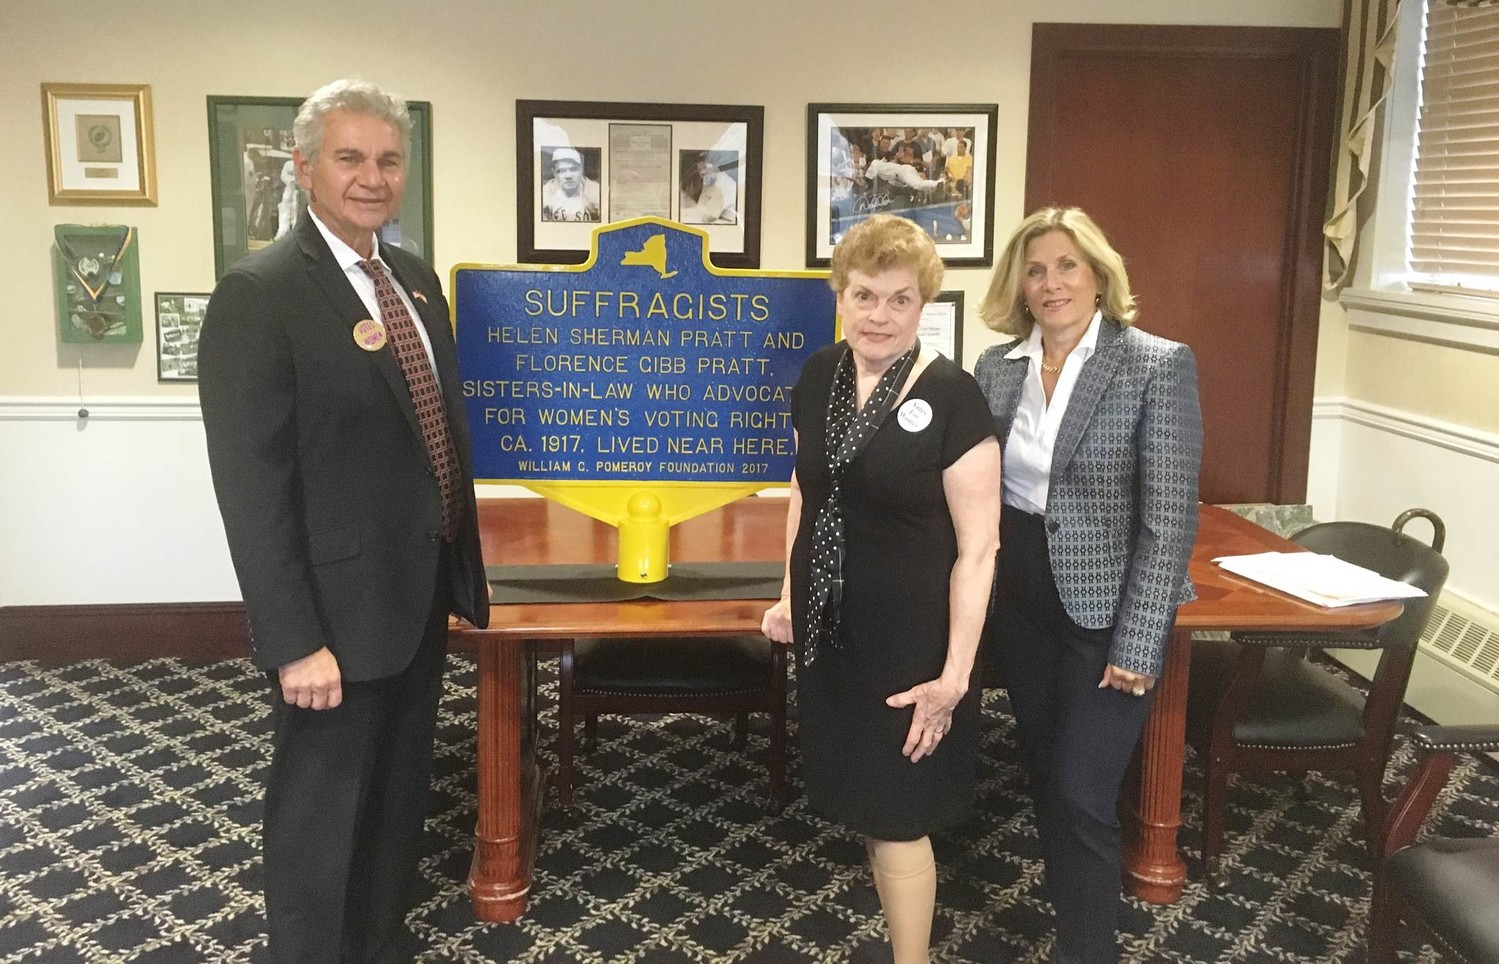 Mayor Reggie Spinello, founder of The Long Island Woman Suffrage Association Antonia Petrash and Councilwoman Pamela Panzenbeck spoke at the installation of a Women's Suffrage marker to honor the 100th anniversary of Women's right to vote in N.Y.